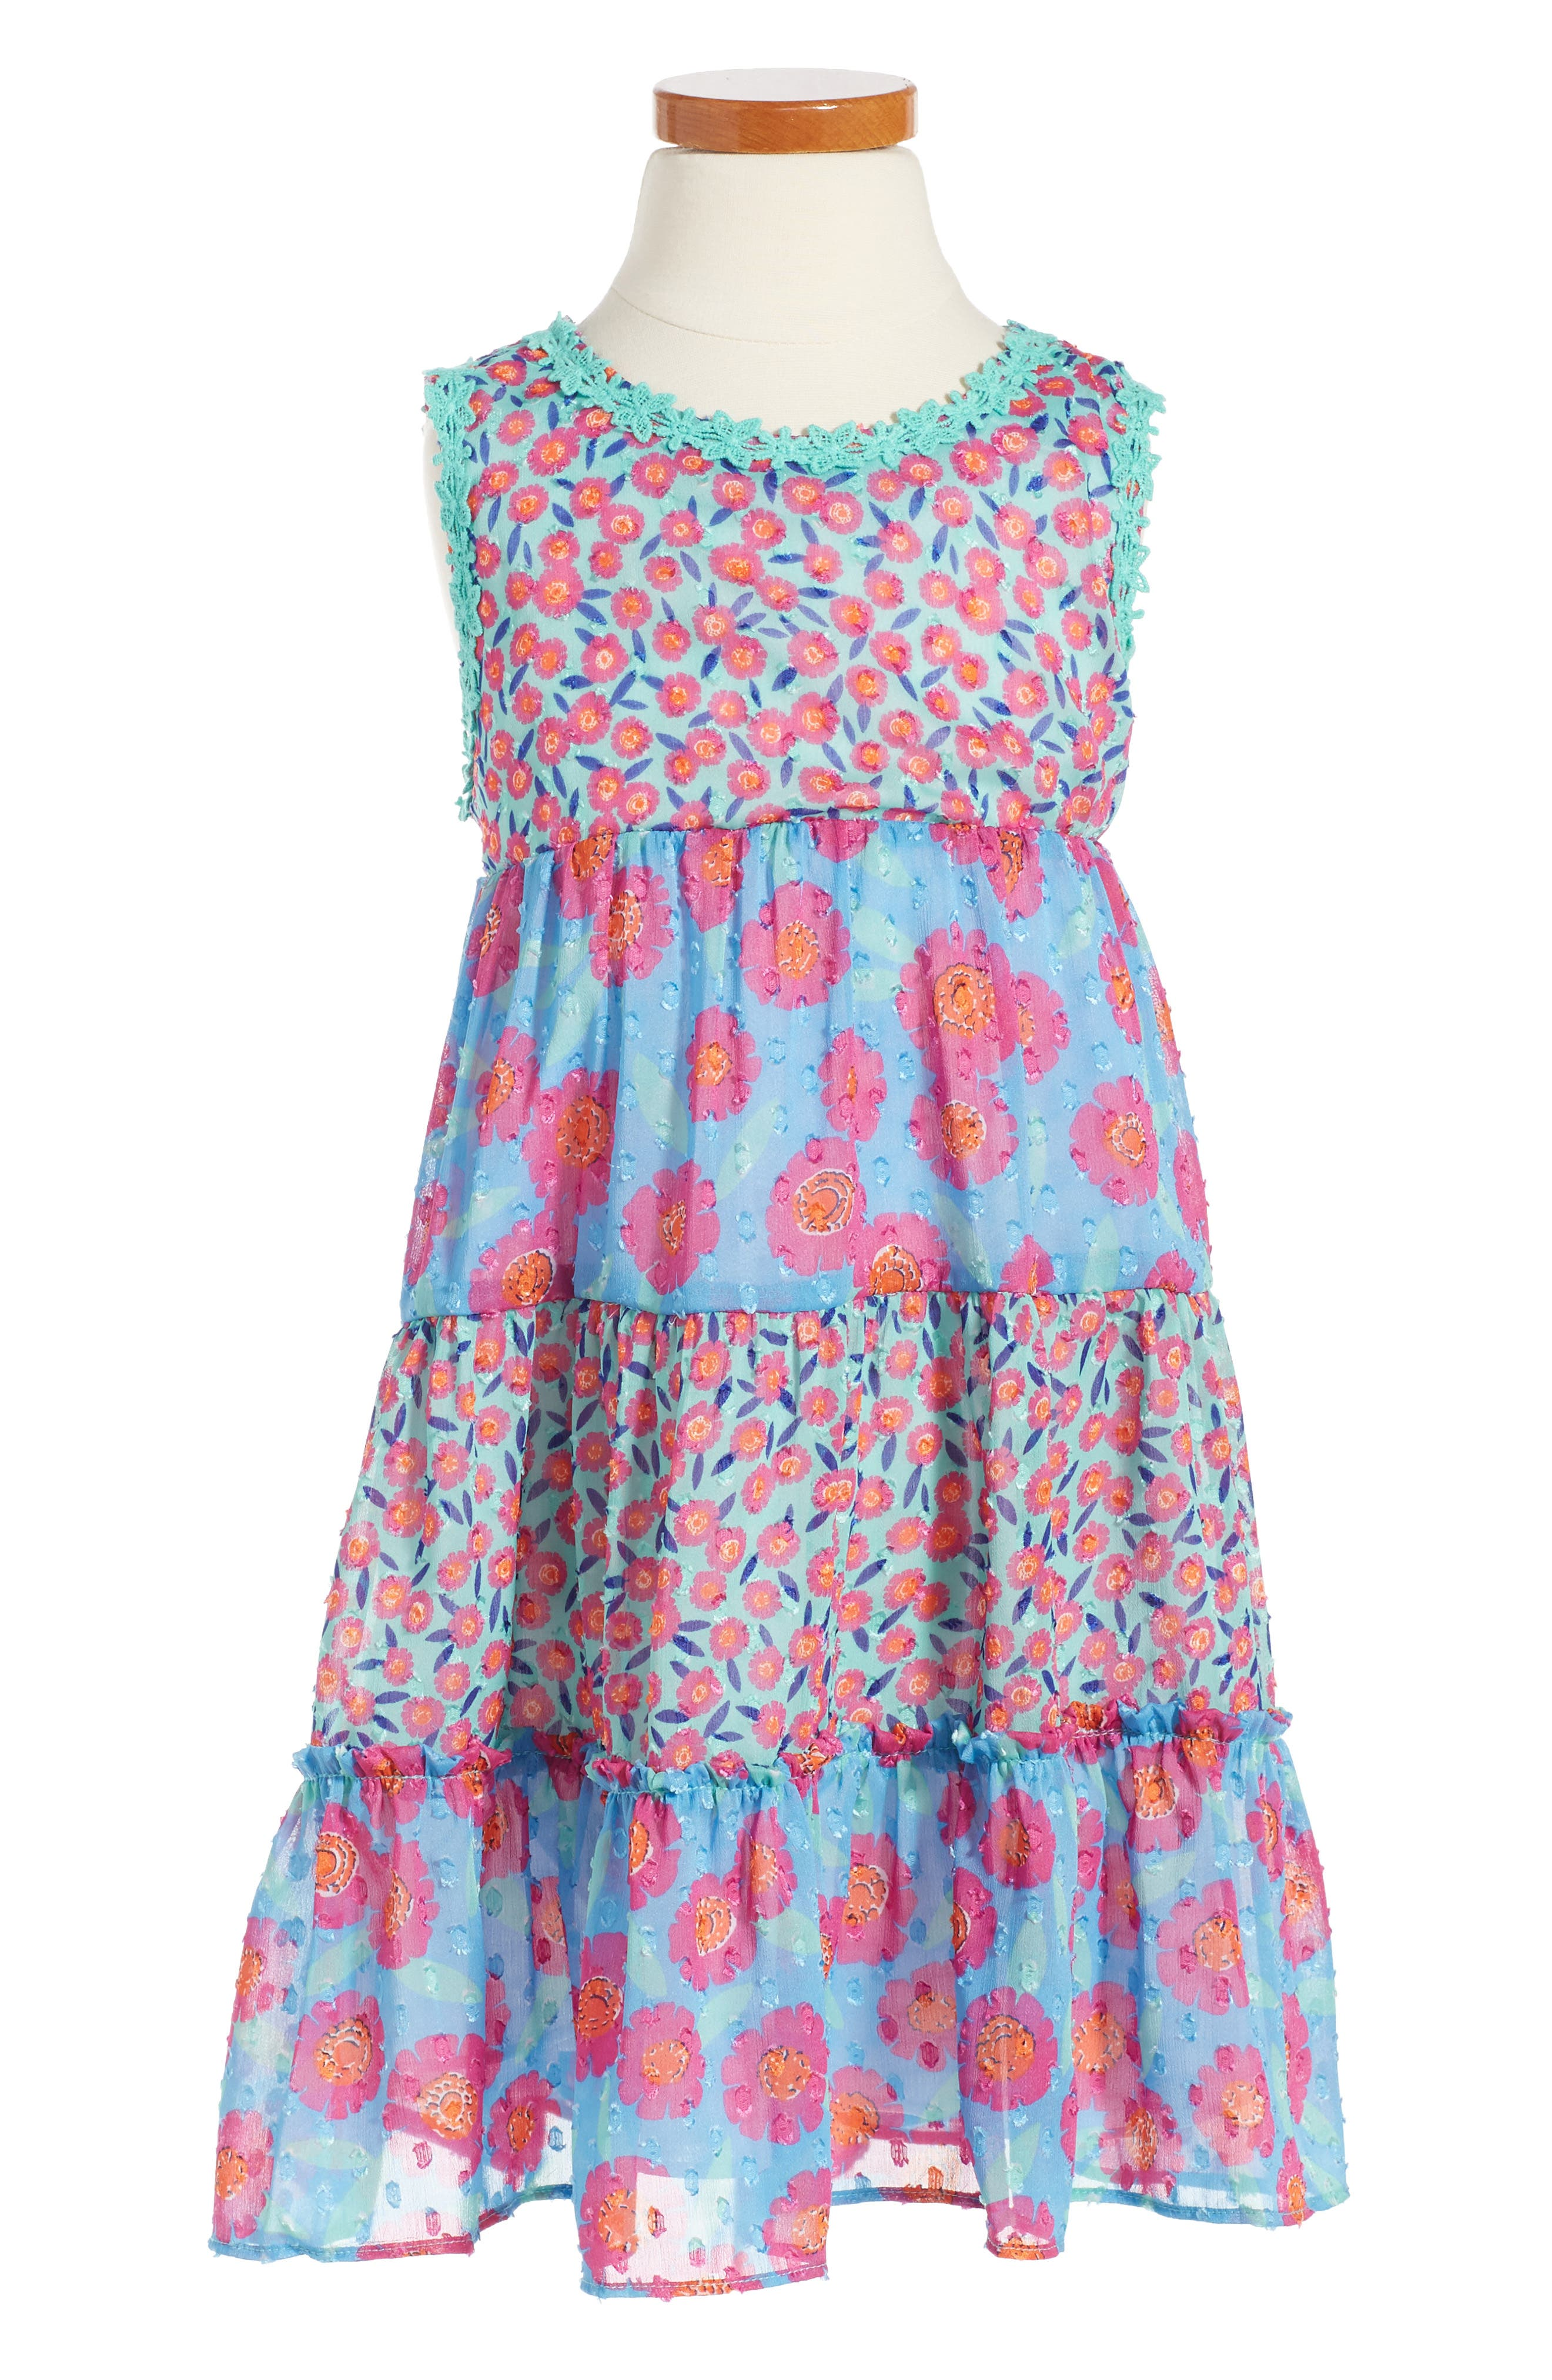 kate spade new york floral tiered dress (Toddler Girls & Little Girls)